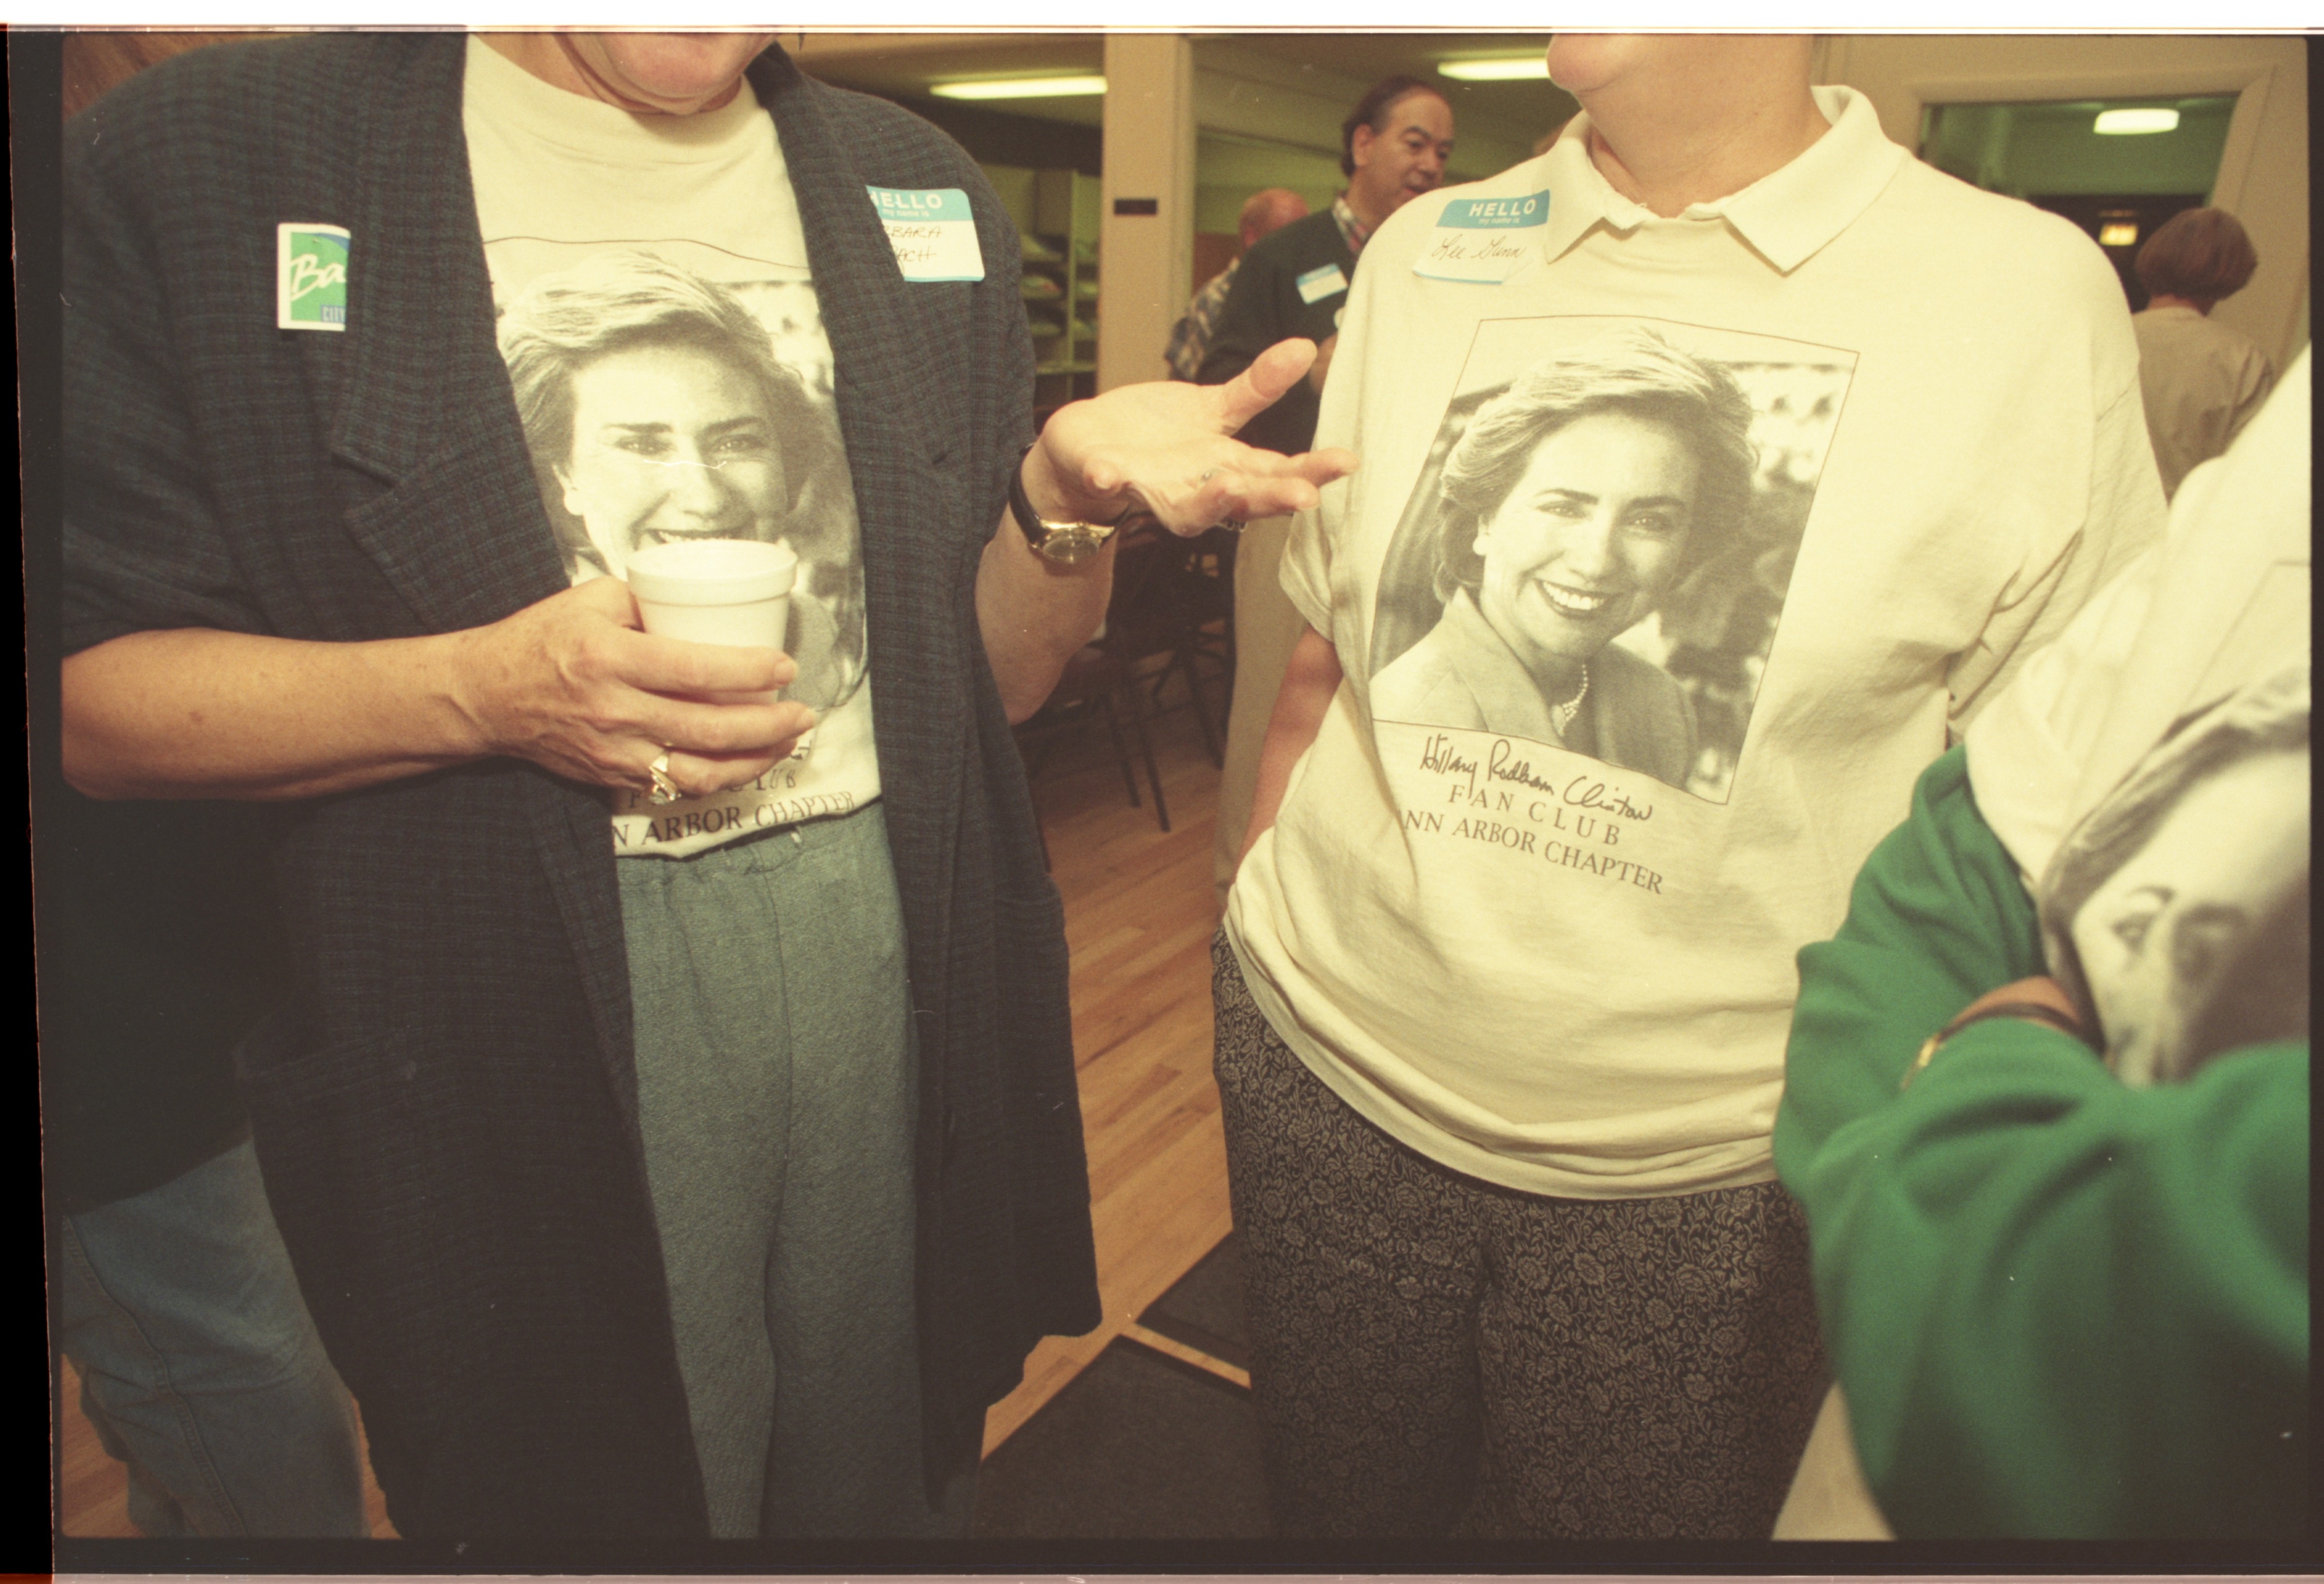 Hillary Rodham Clinton Fan Club - Ann Arbor Chapter, October 1995 image